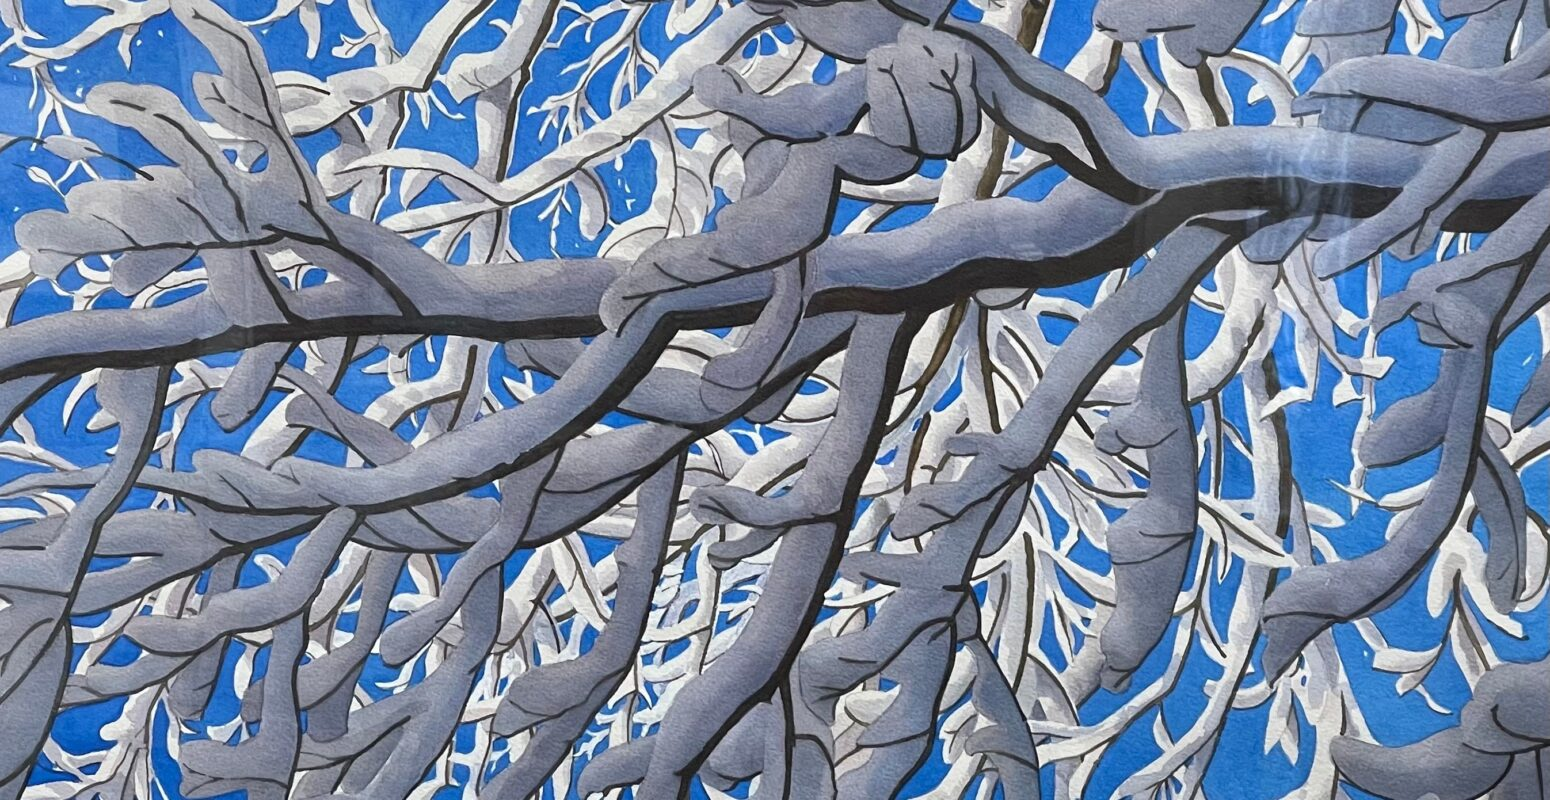 Essence of Winter- Exhibit by Juried Artists